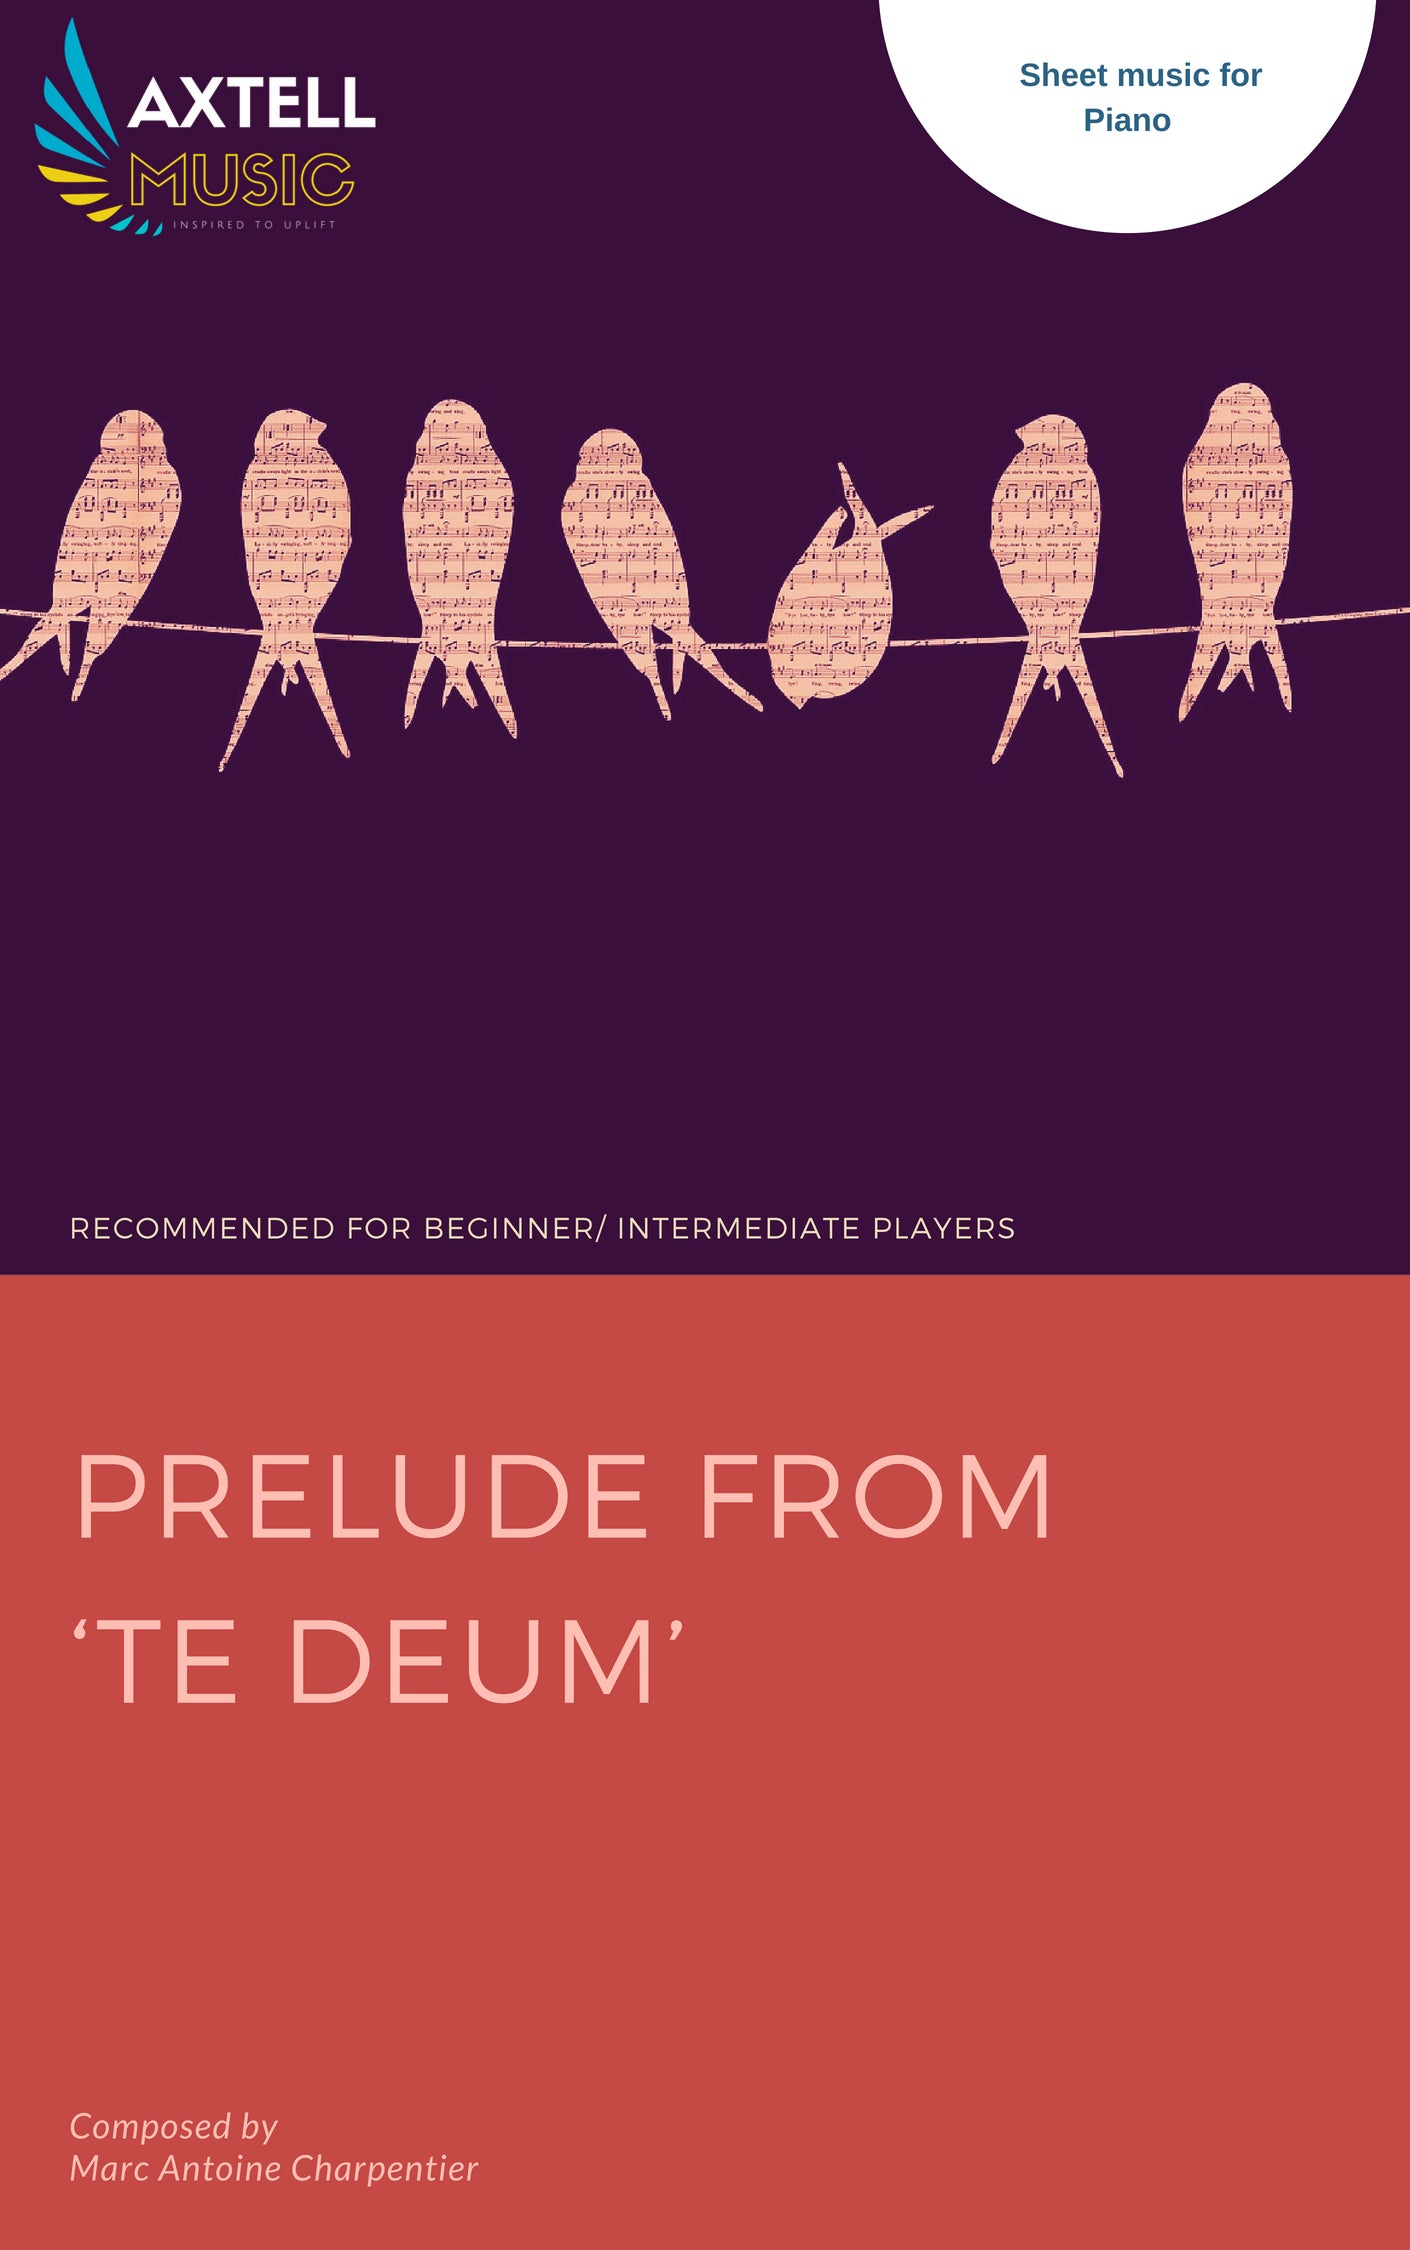 Prelude From 'Te Deum' Piano Sheet music cover  from Axtell Music - Inspired To Uplift